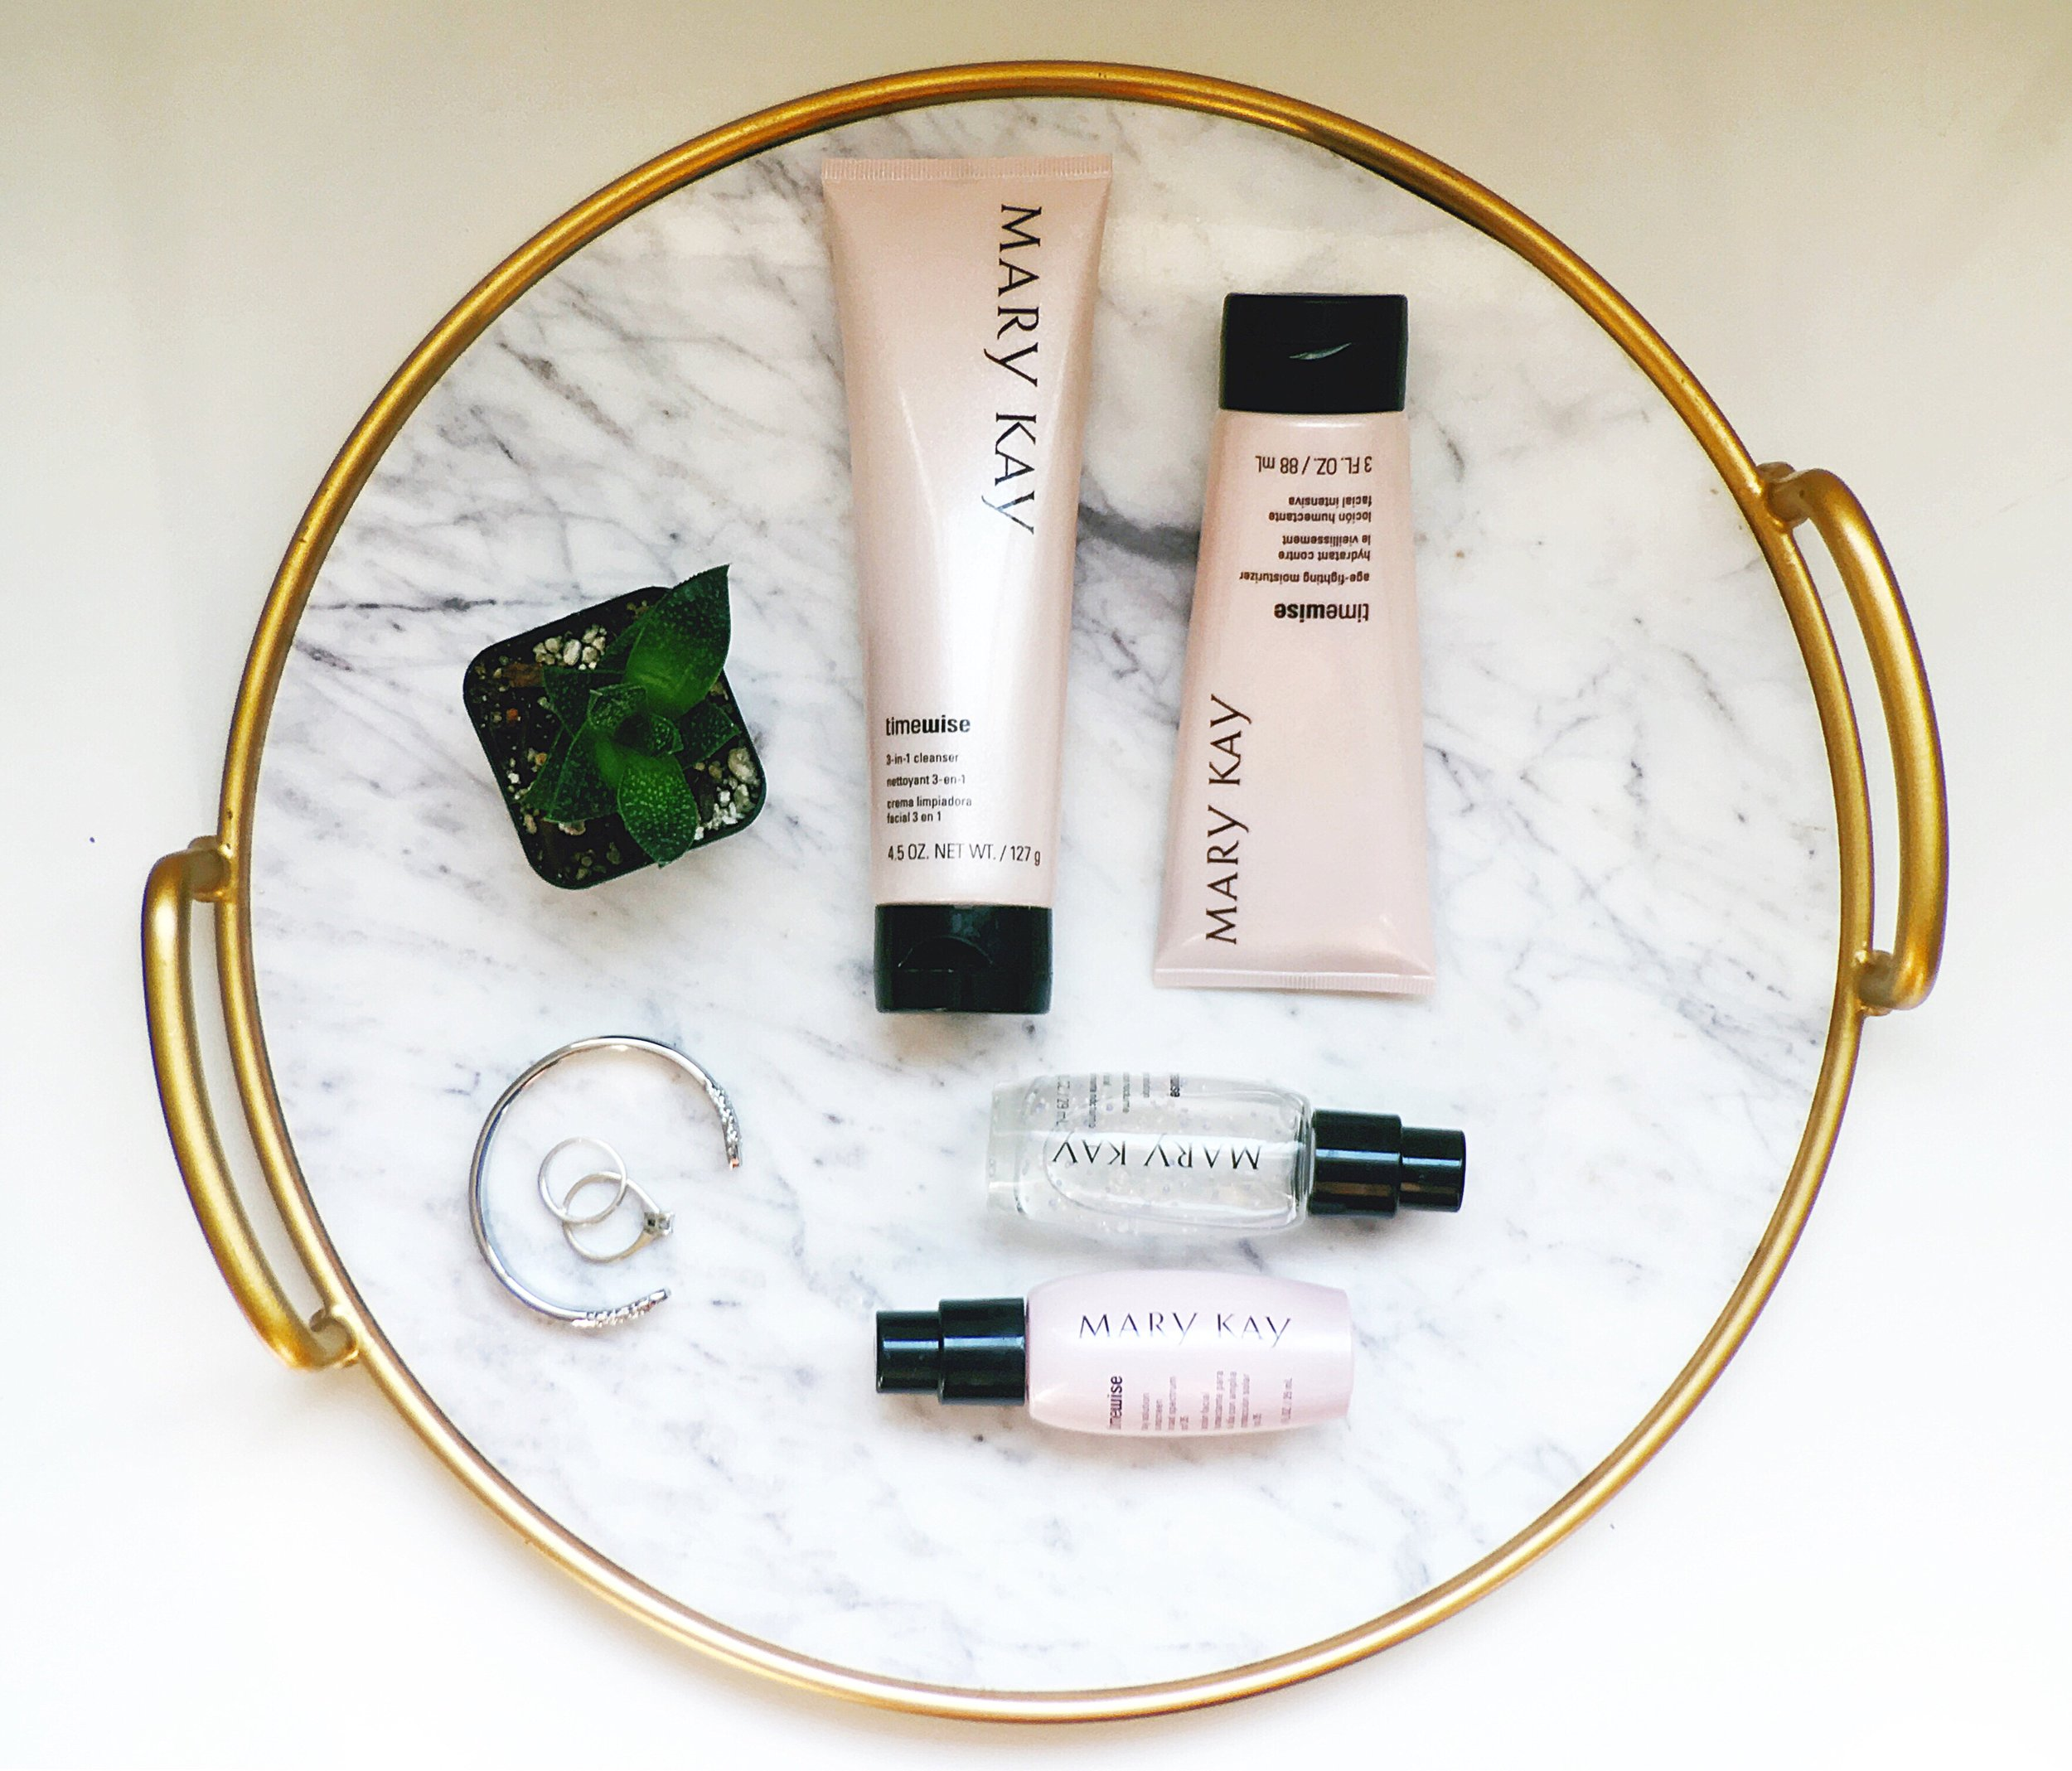 Mary Kay Timewise Miracle Set, Mary Kay Face lotion, cleanser, Maria Shireen Silver floral HairTie Bracelet/